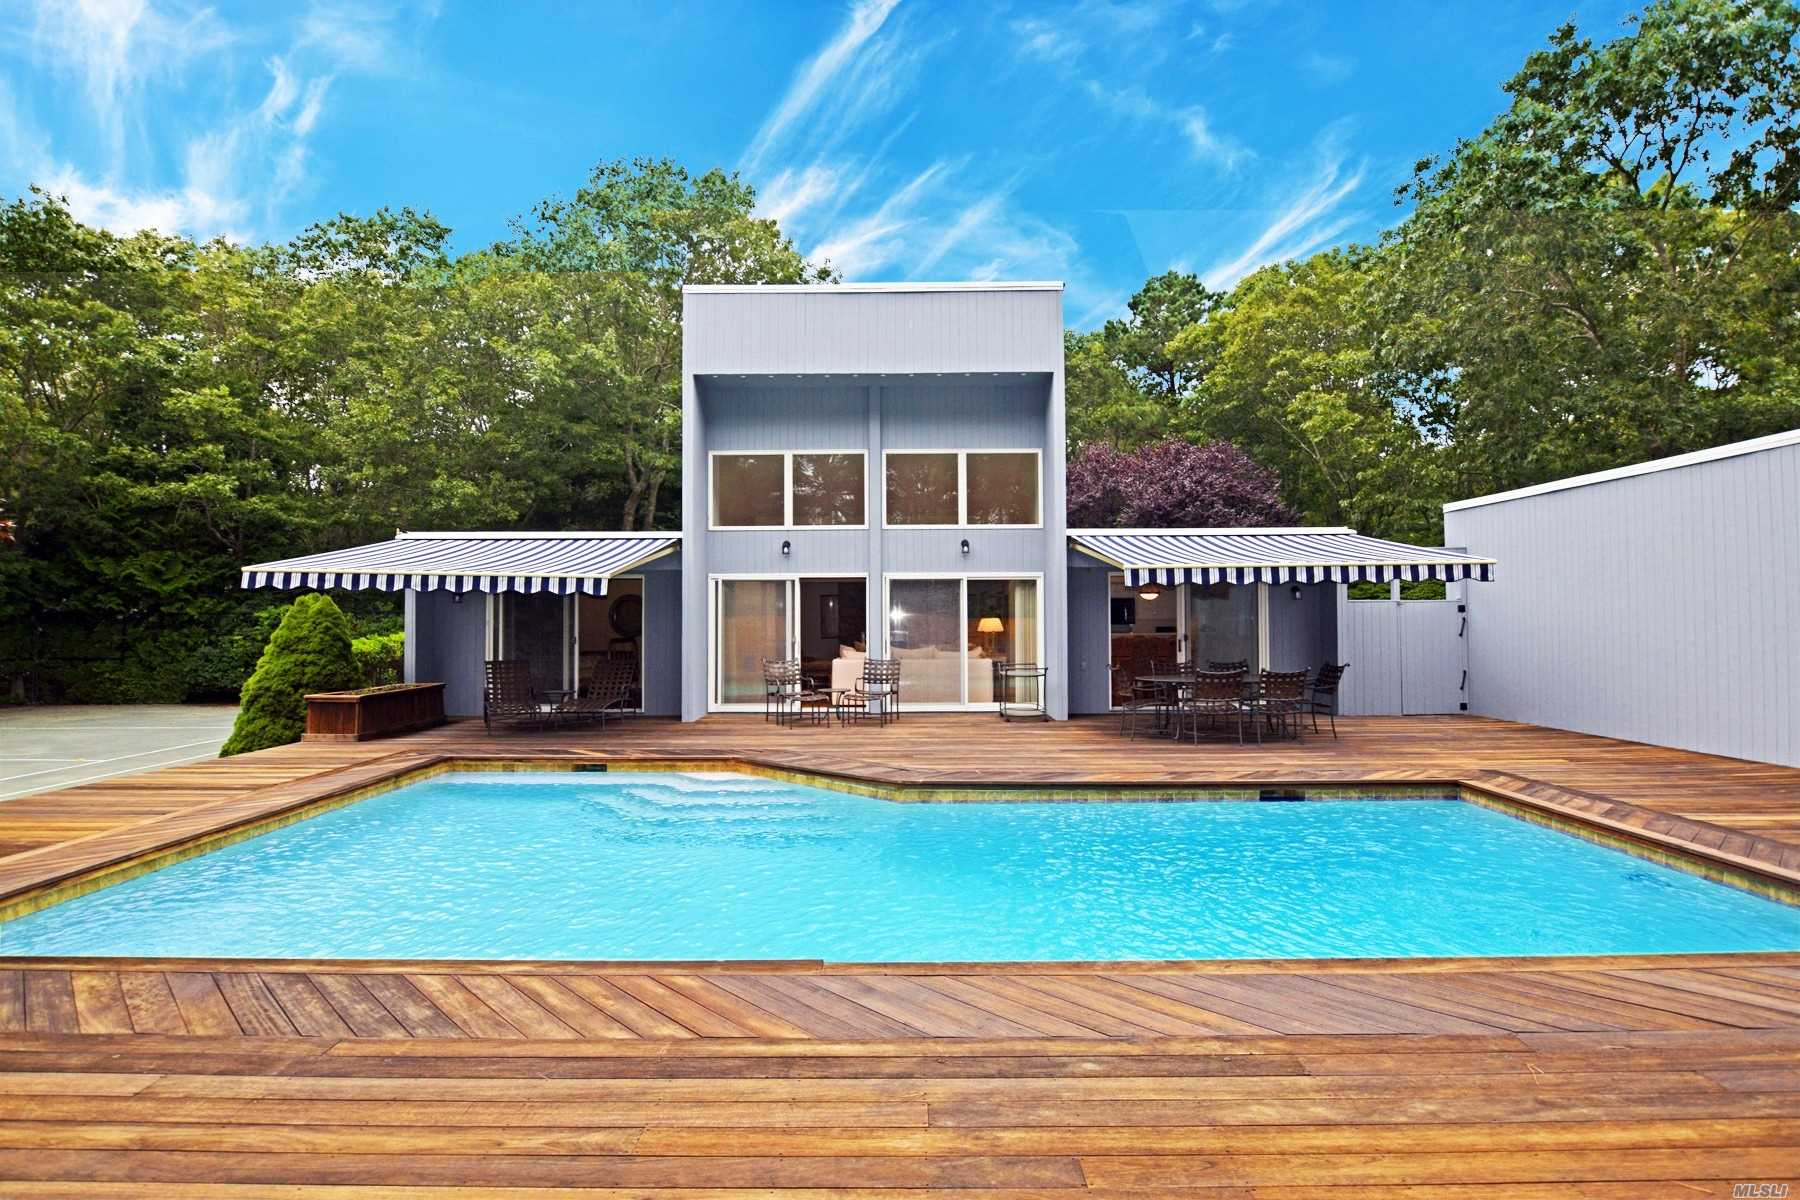 Sought After Quogue Village! This Spacious Contemporary Offers An Open Floor Plan With Eat-In-Kitchen, Family Room With Cathedral Ceilings, Master Suite, En-Suite, Two Guest Bedrooms, Guest Bath, Finished Basement, Detached Garage, Heated Gunite Pool & Har-Tru Tennis. Just Minutes Away From The Famous Quogue Field Club & Village Beach.